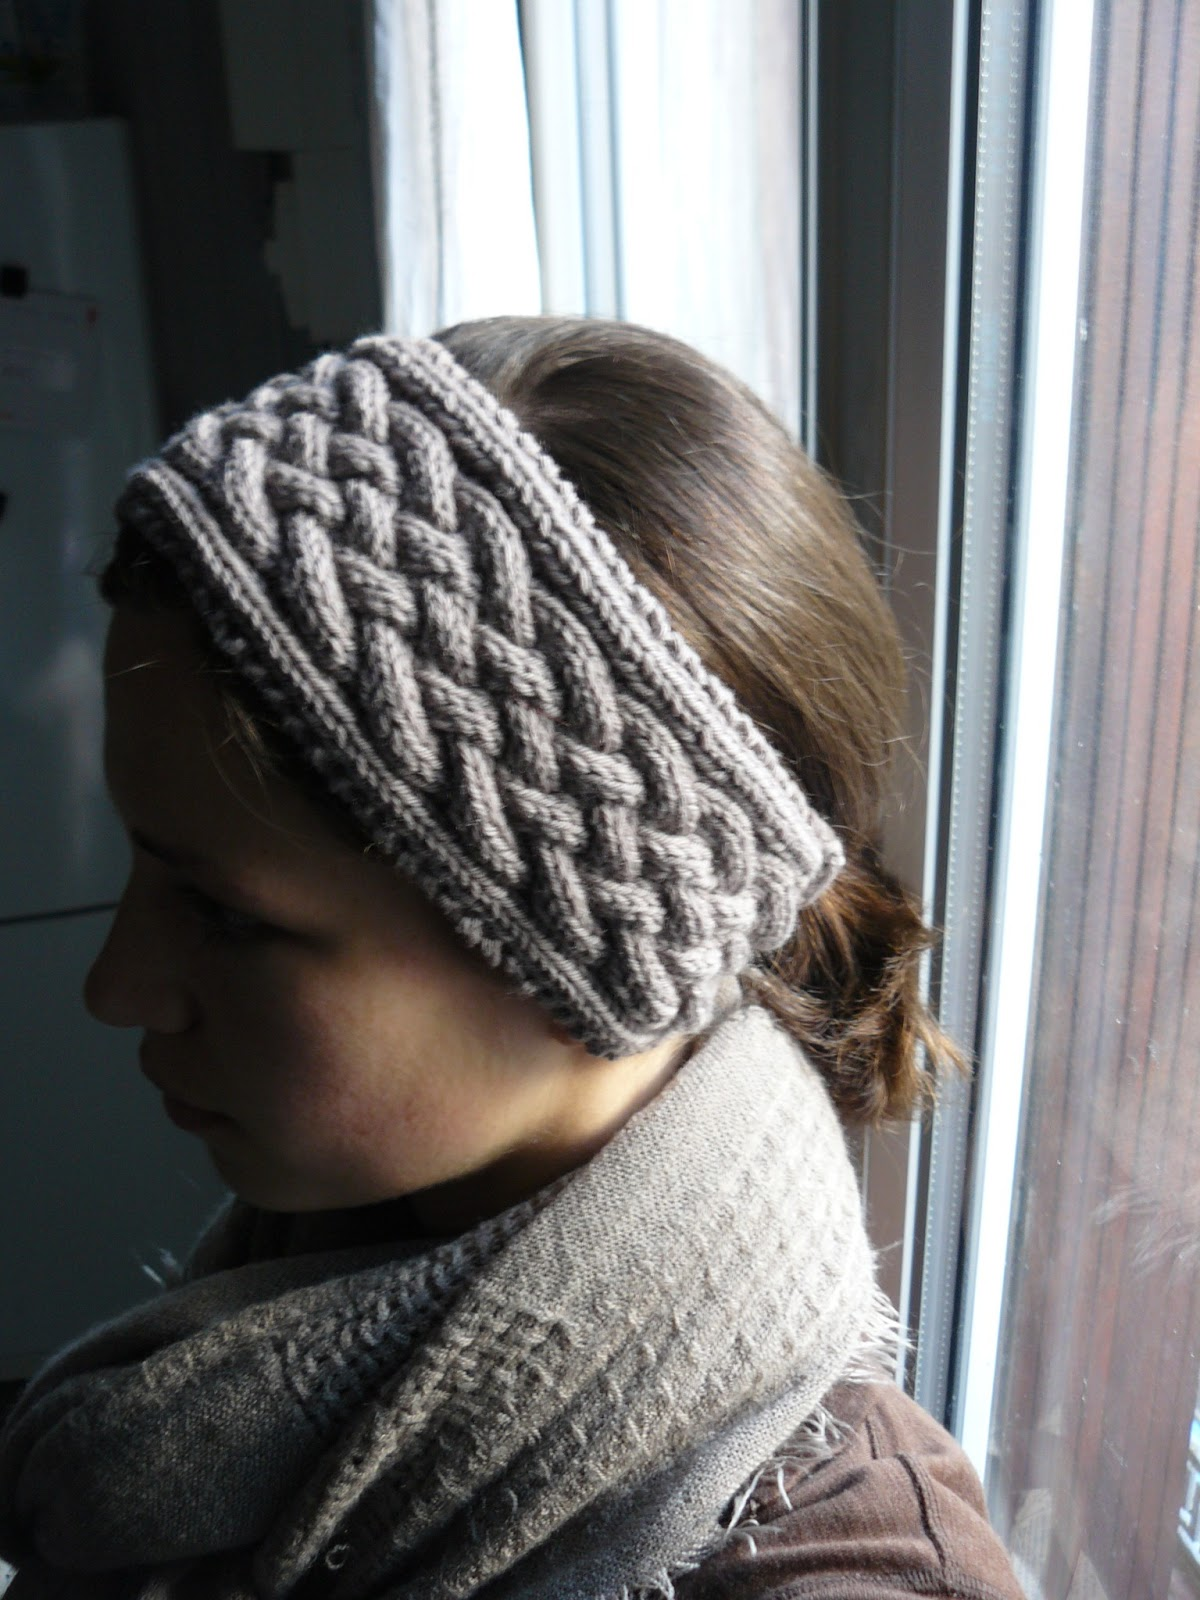 Knitting Pattern Cable Knit Headband : The Woven Home: Knitting Projects: Cabled Headband